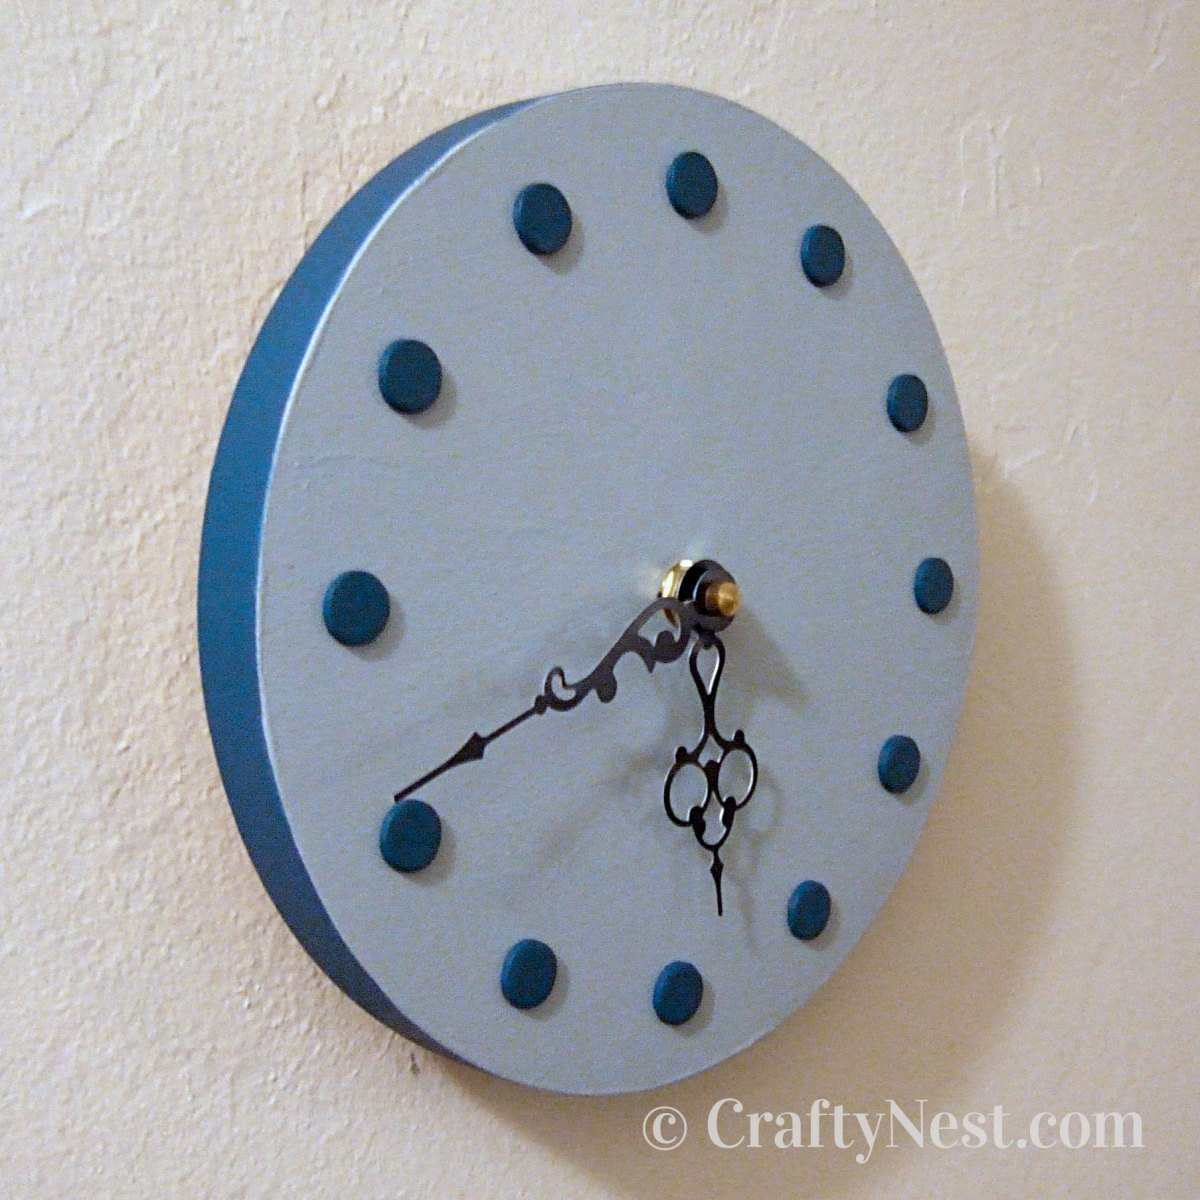 Side view of small clock, photo